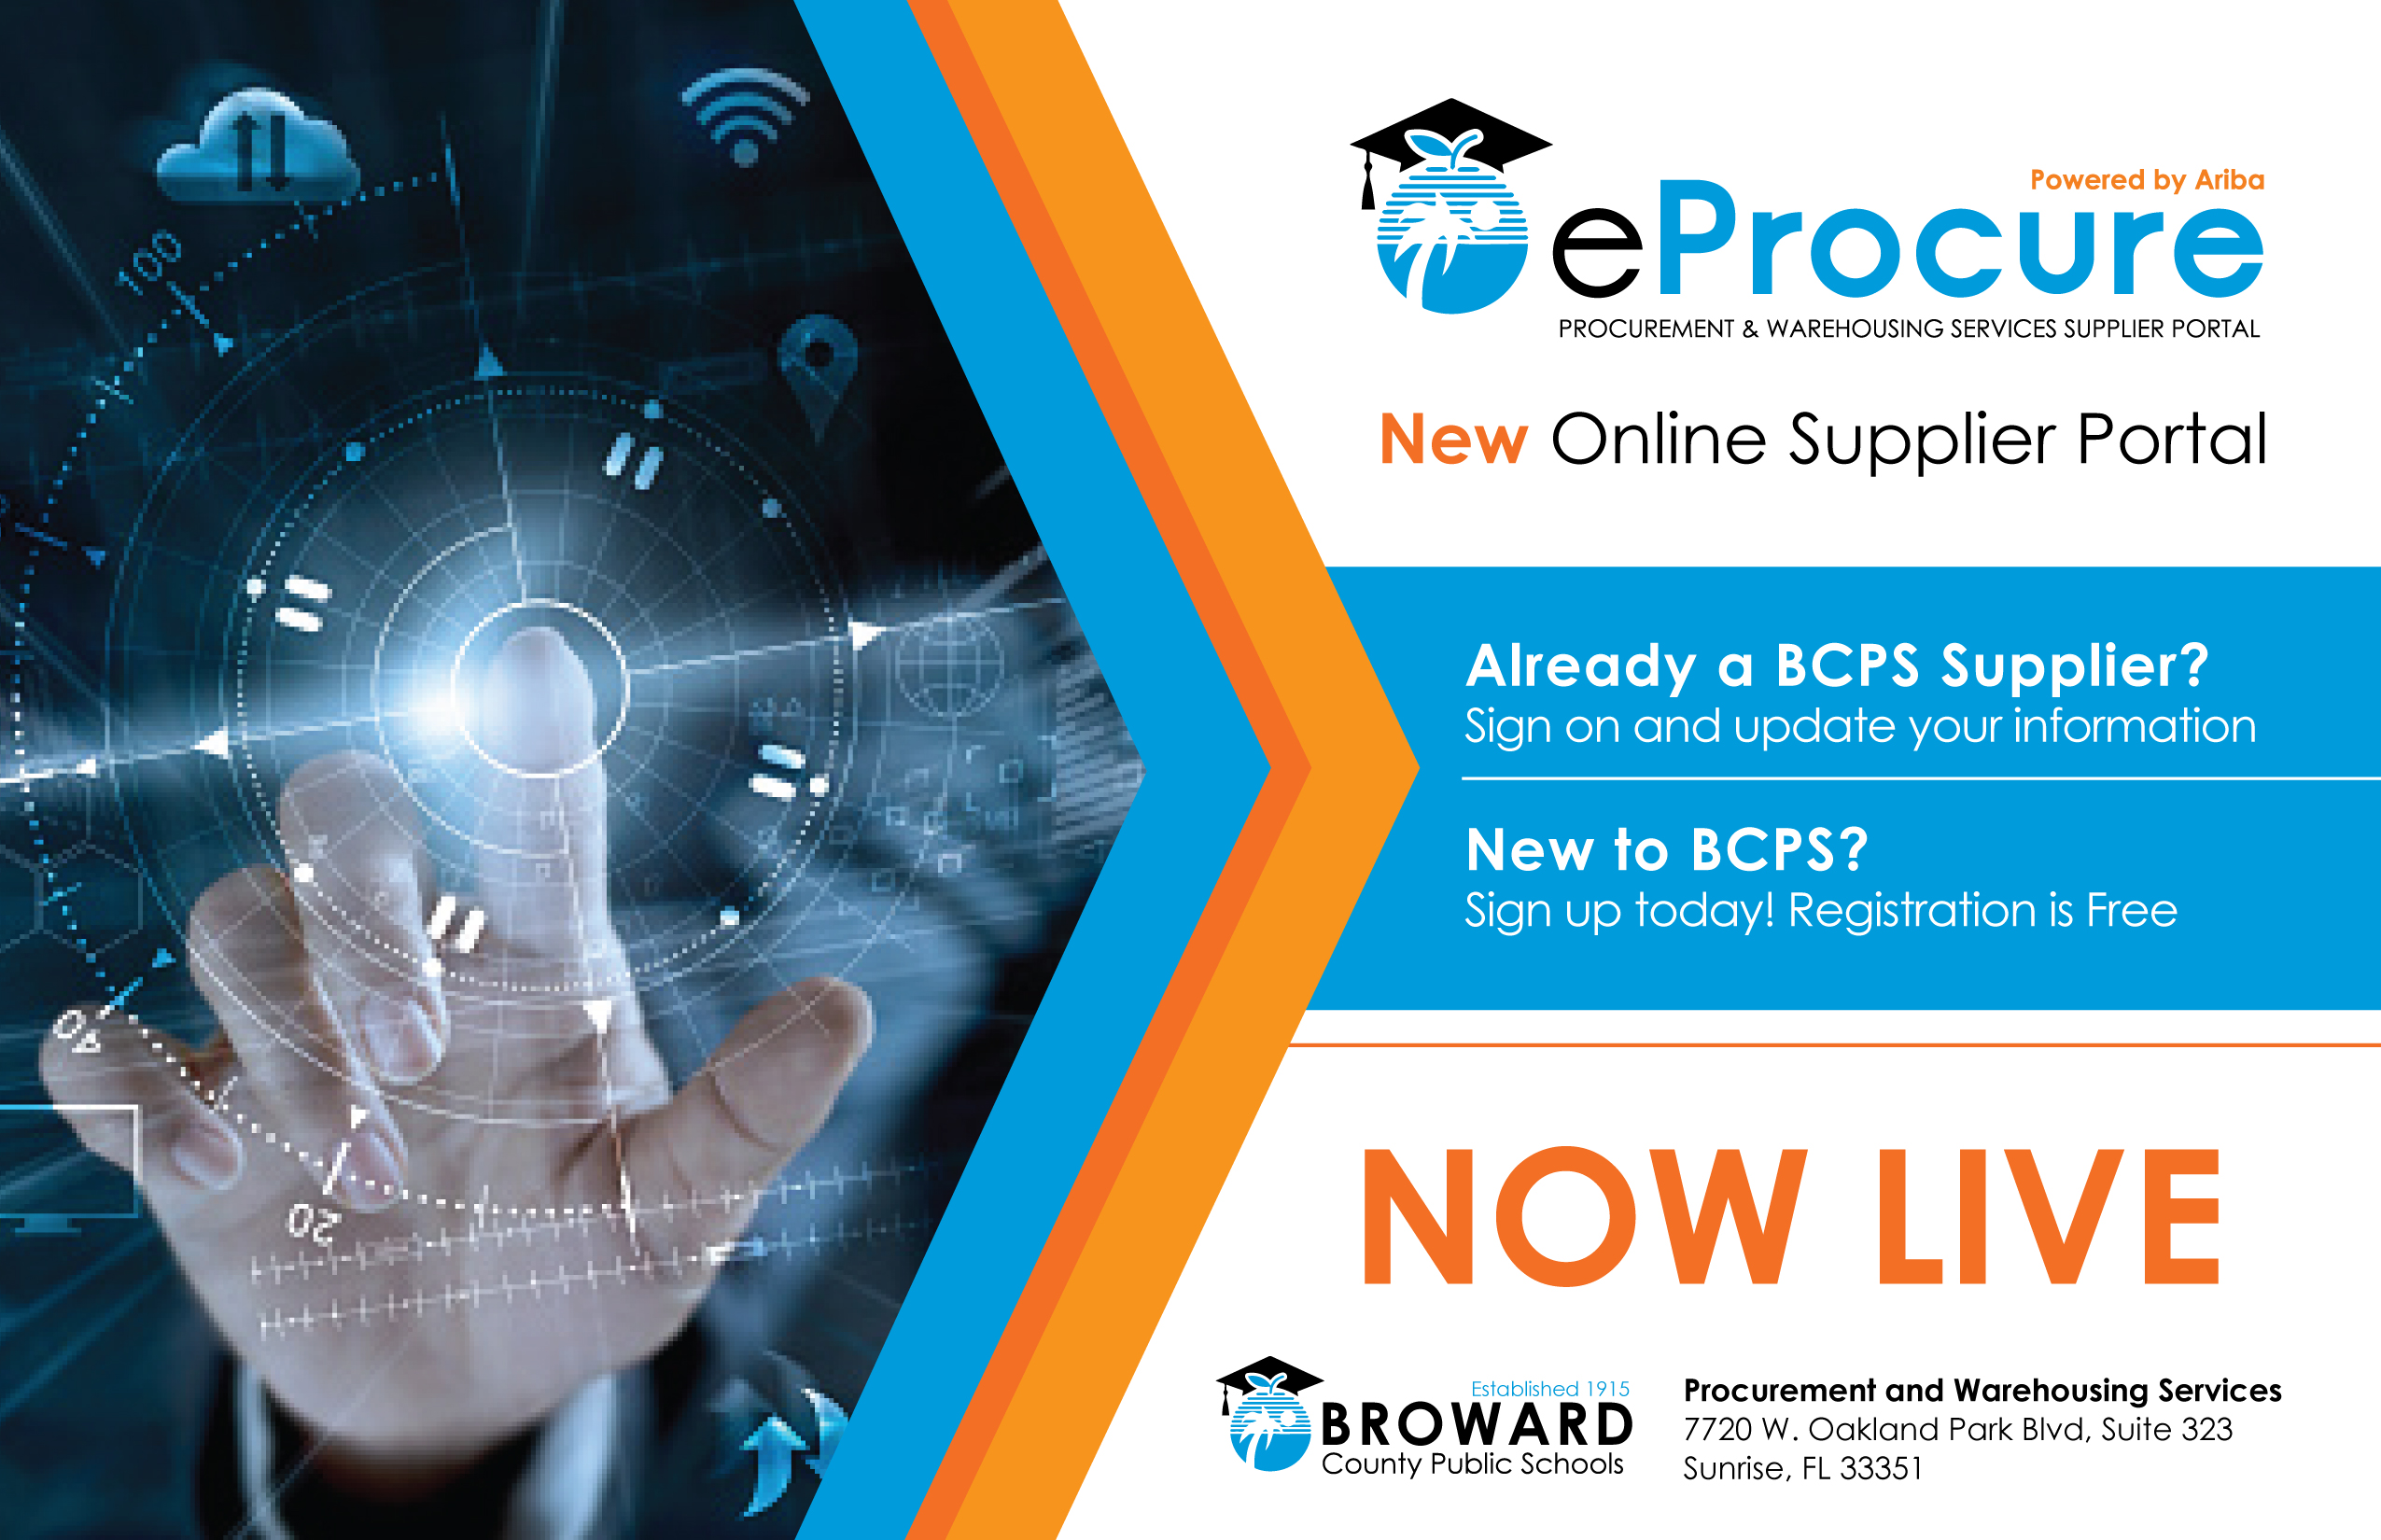 Procurement and Warehousing - eProcure Announcement - New Online Supplier Portal is NOW LIVE